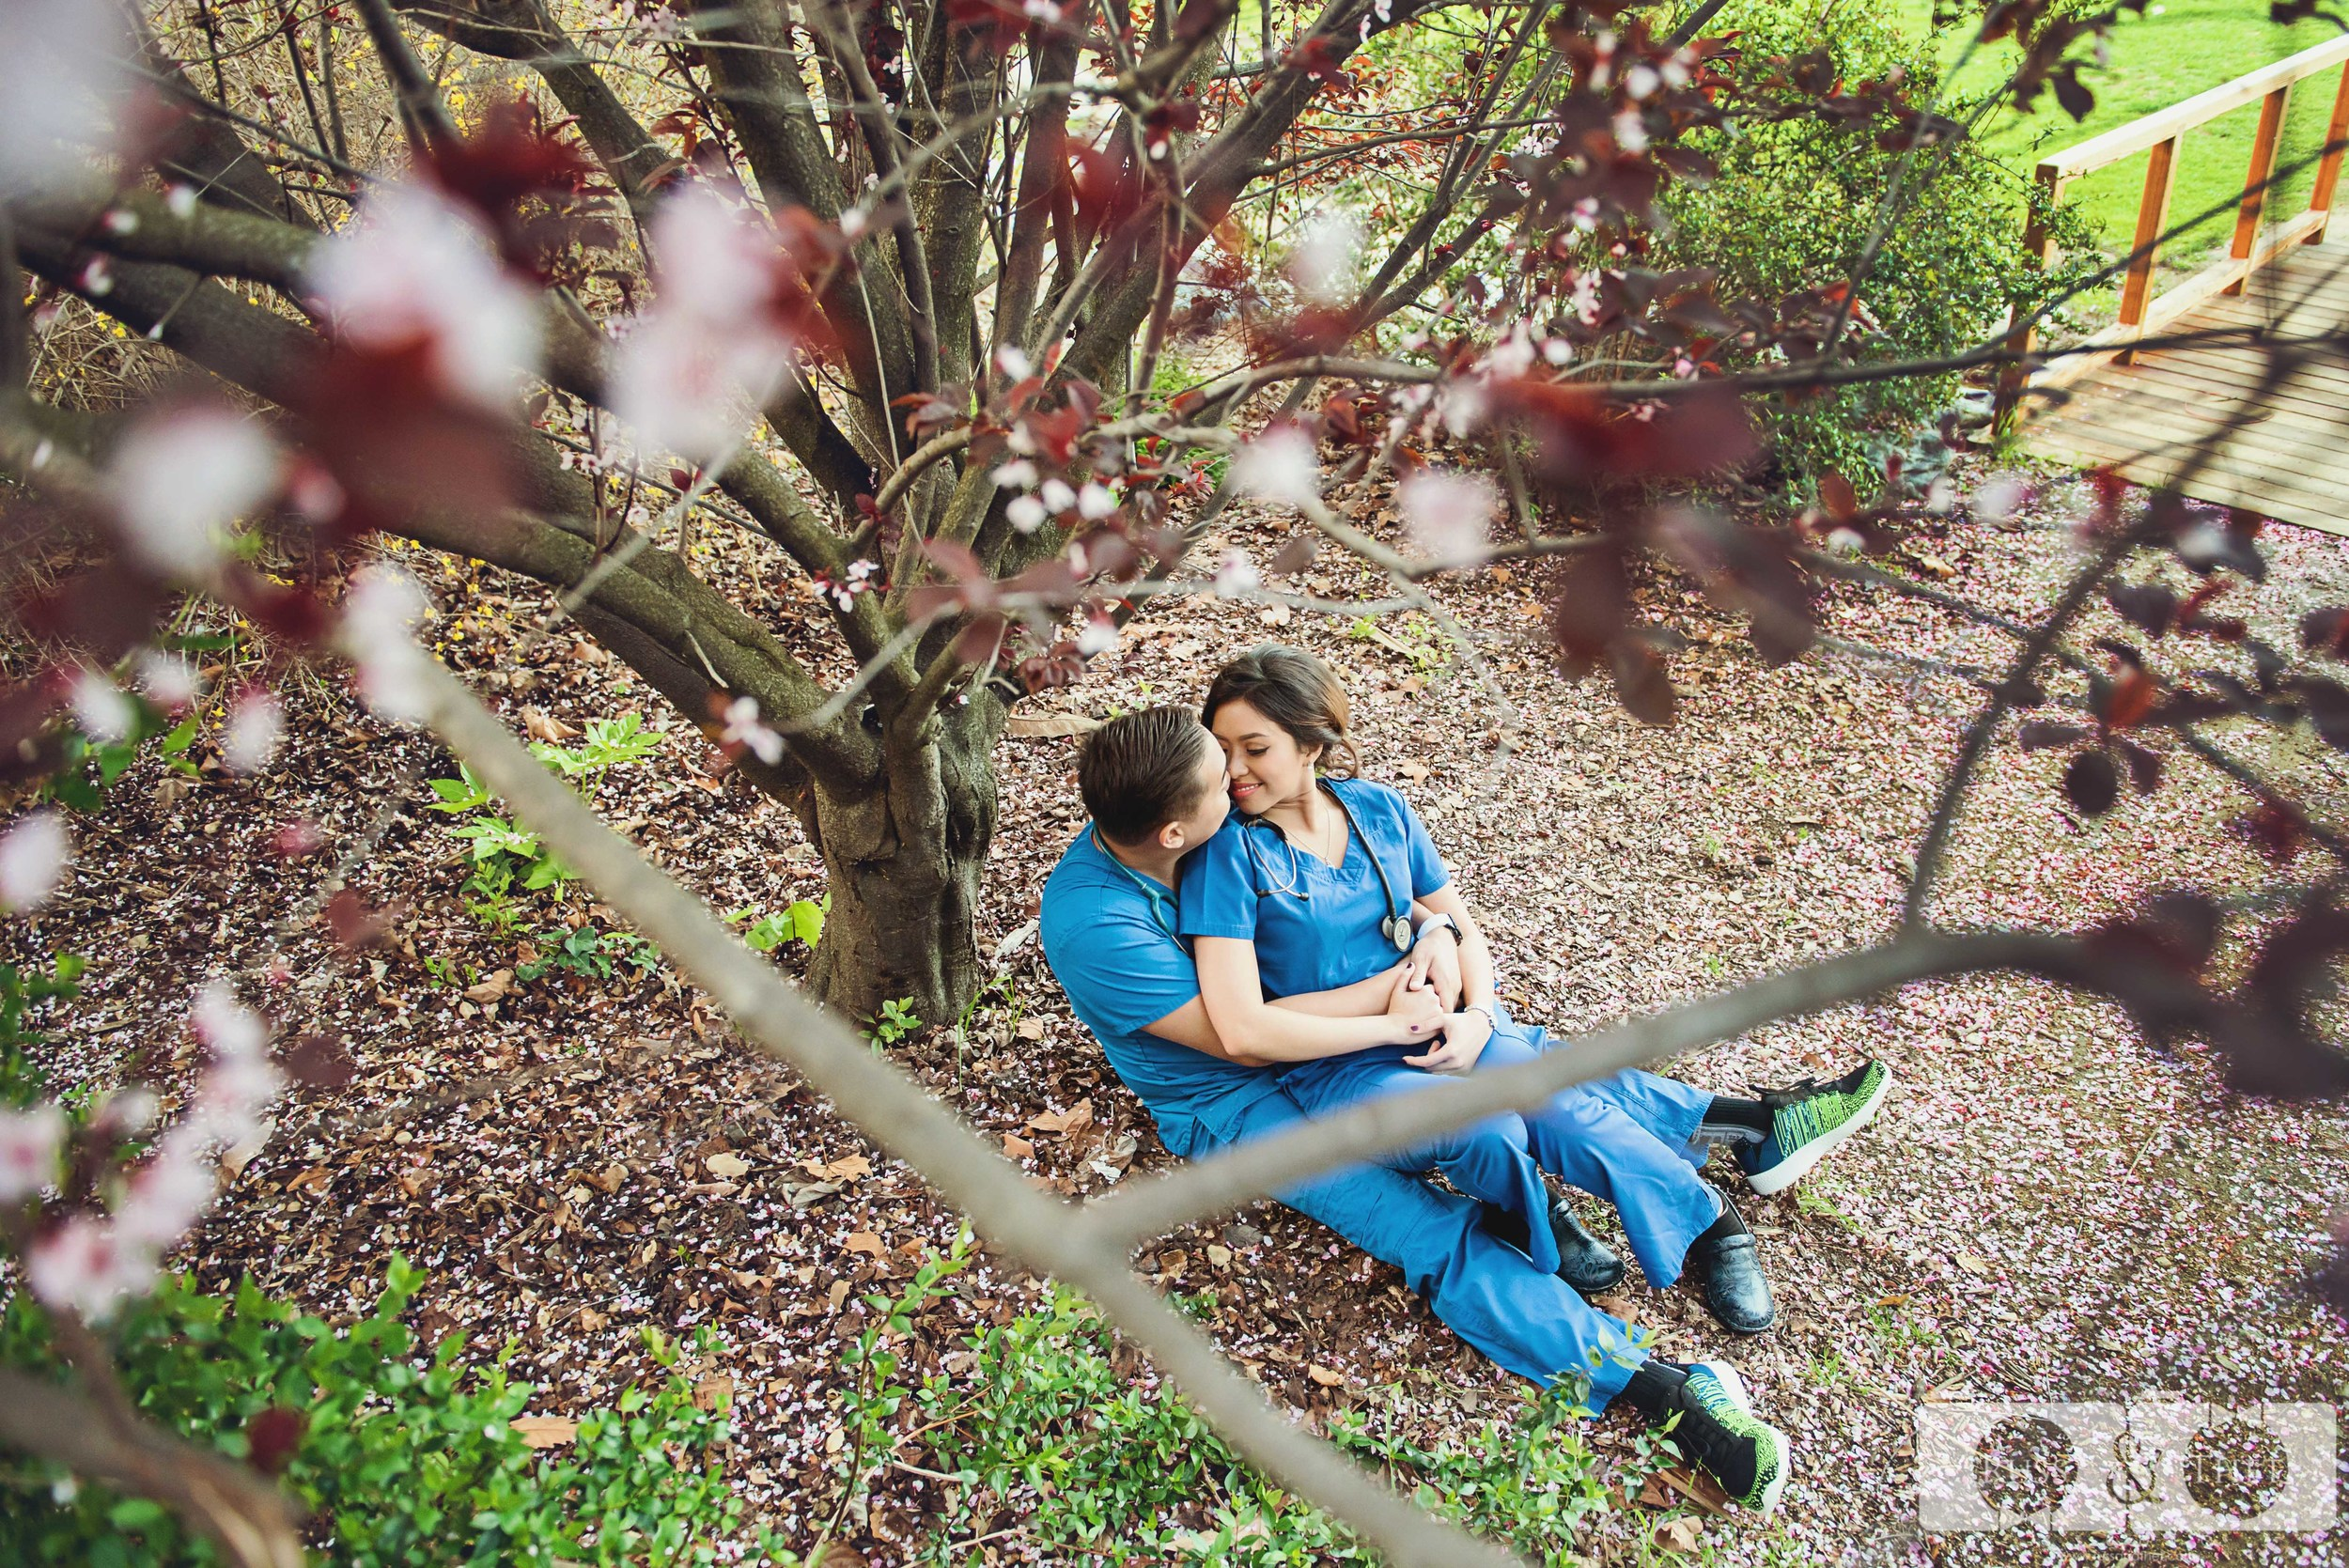 LA-arboretum-engagement-session-30.JPG